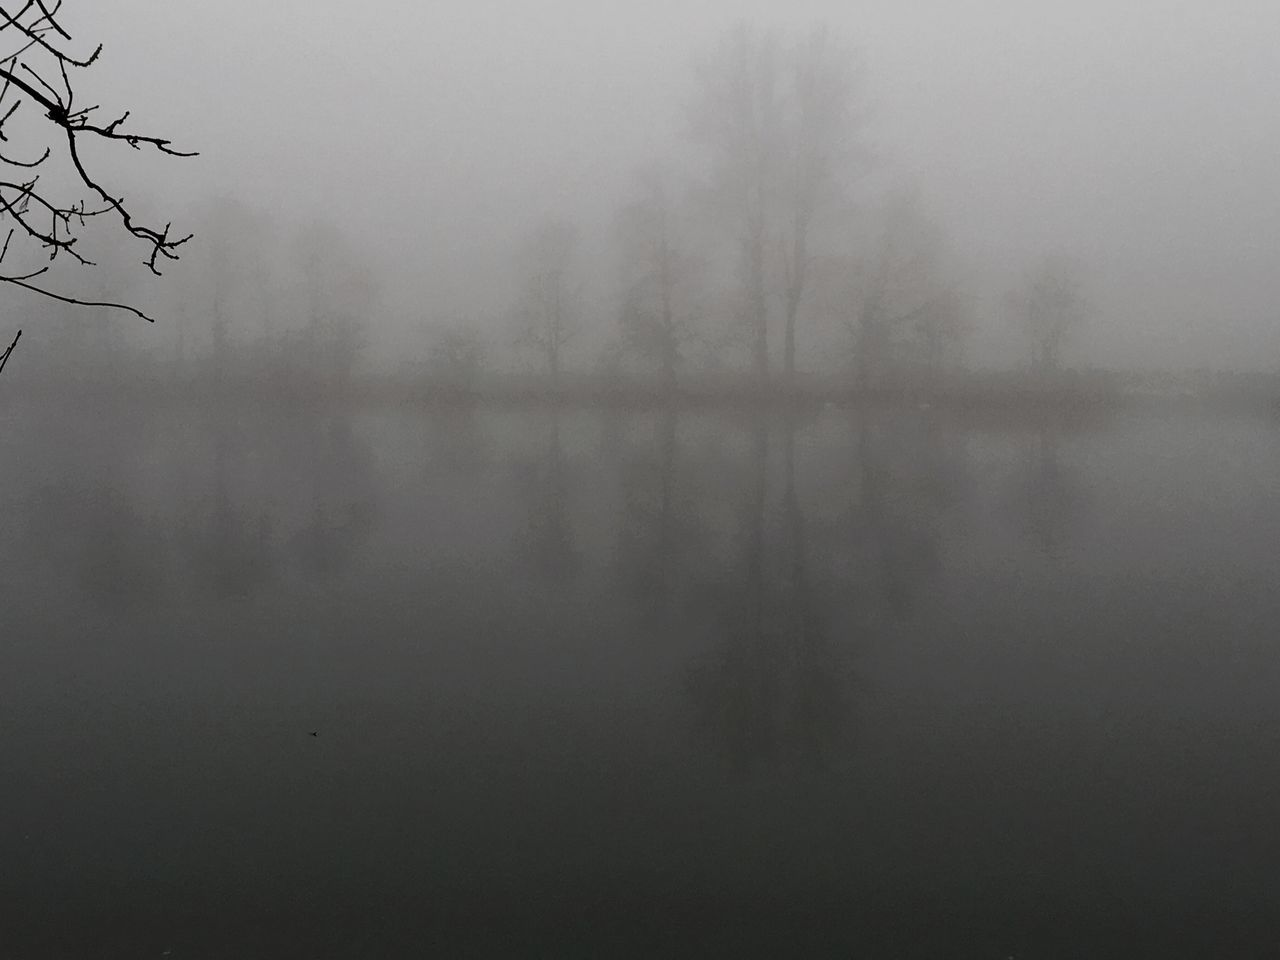 fog, mist, foggy, hazy, tree, nature, weather, tranquility, beauty in nature, no people, tranquil scene, landscape, scenics, winter, outdoors, day, cold temperature, sky